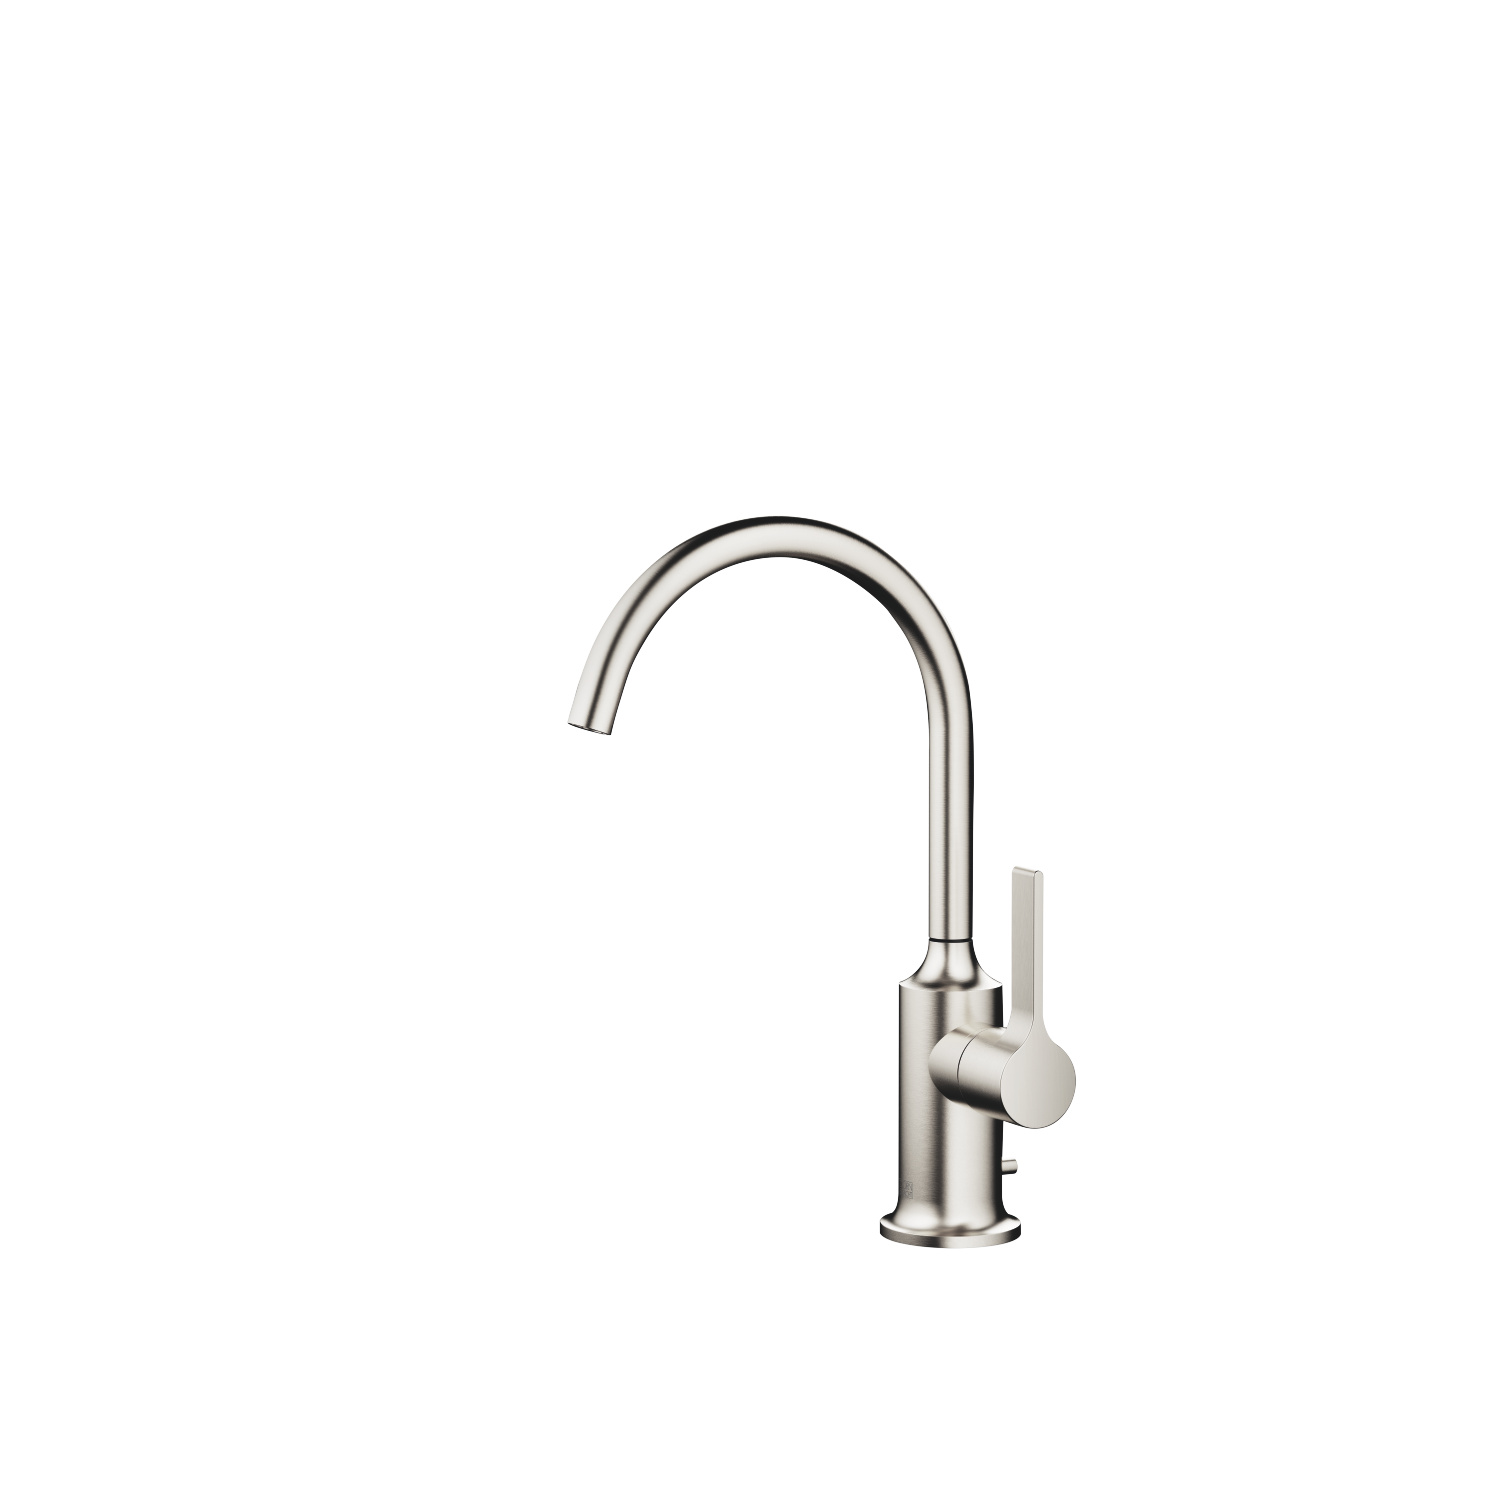 Single-lever lavatory mixer with drain - platinum matte